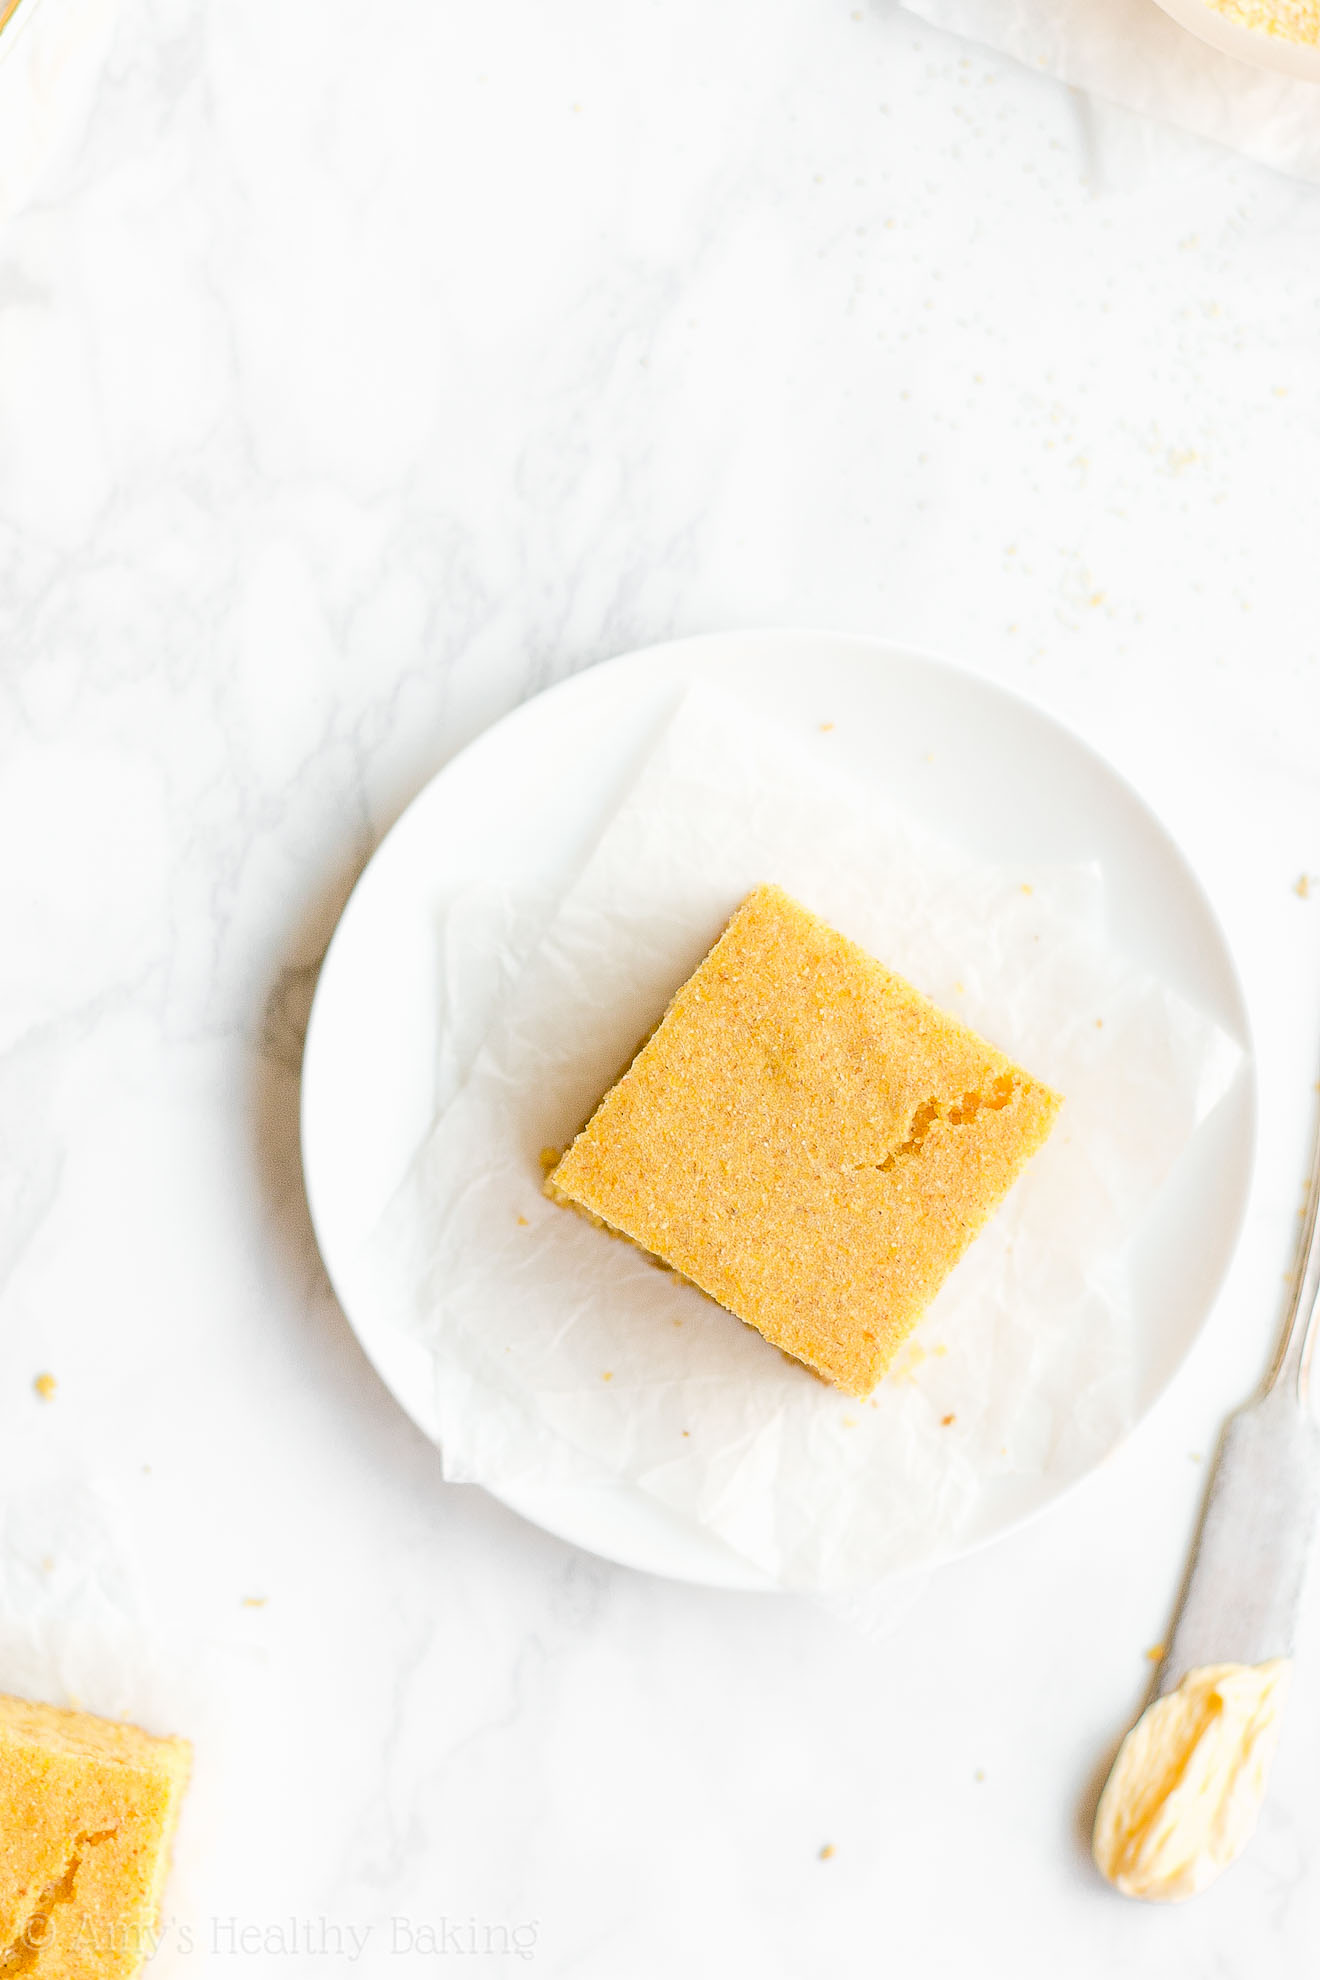 Simple Healthy Clean Eating Greek Yogurt One-Bowl Cornbread